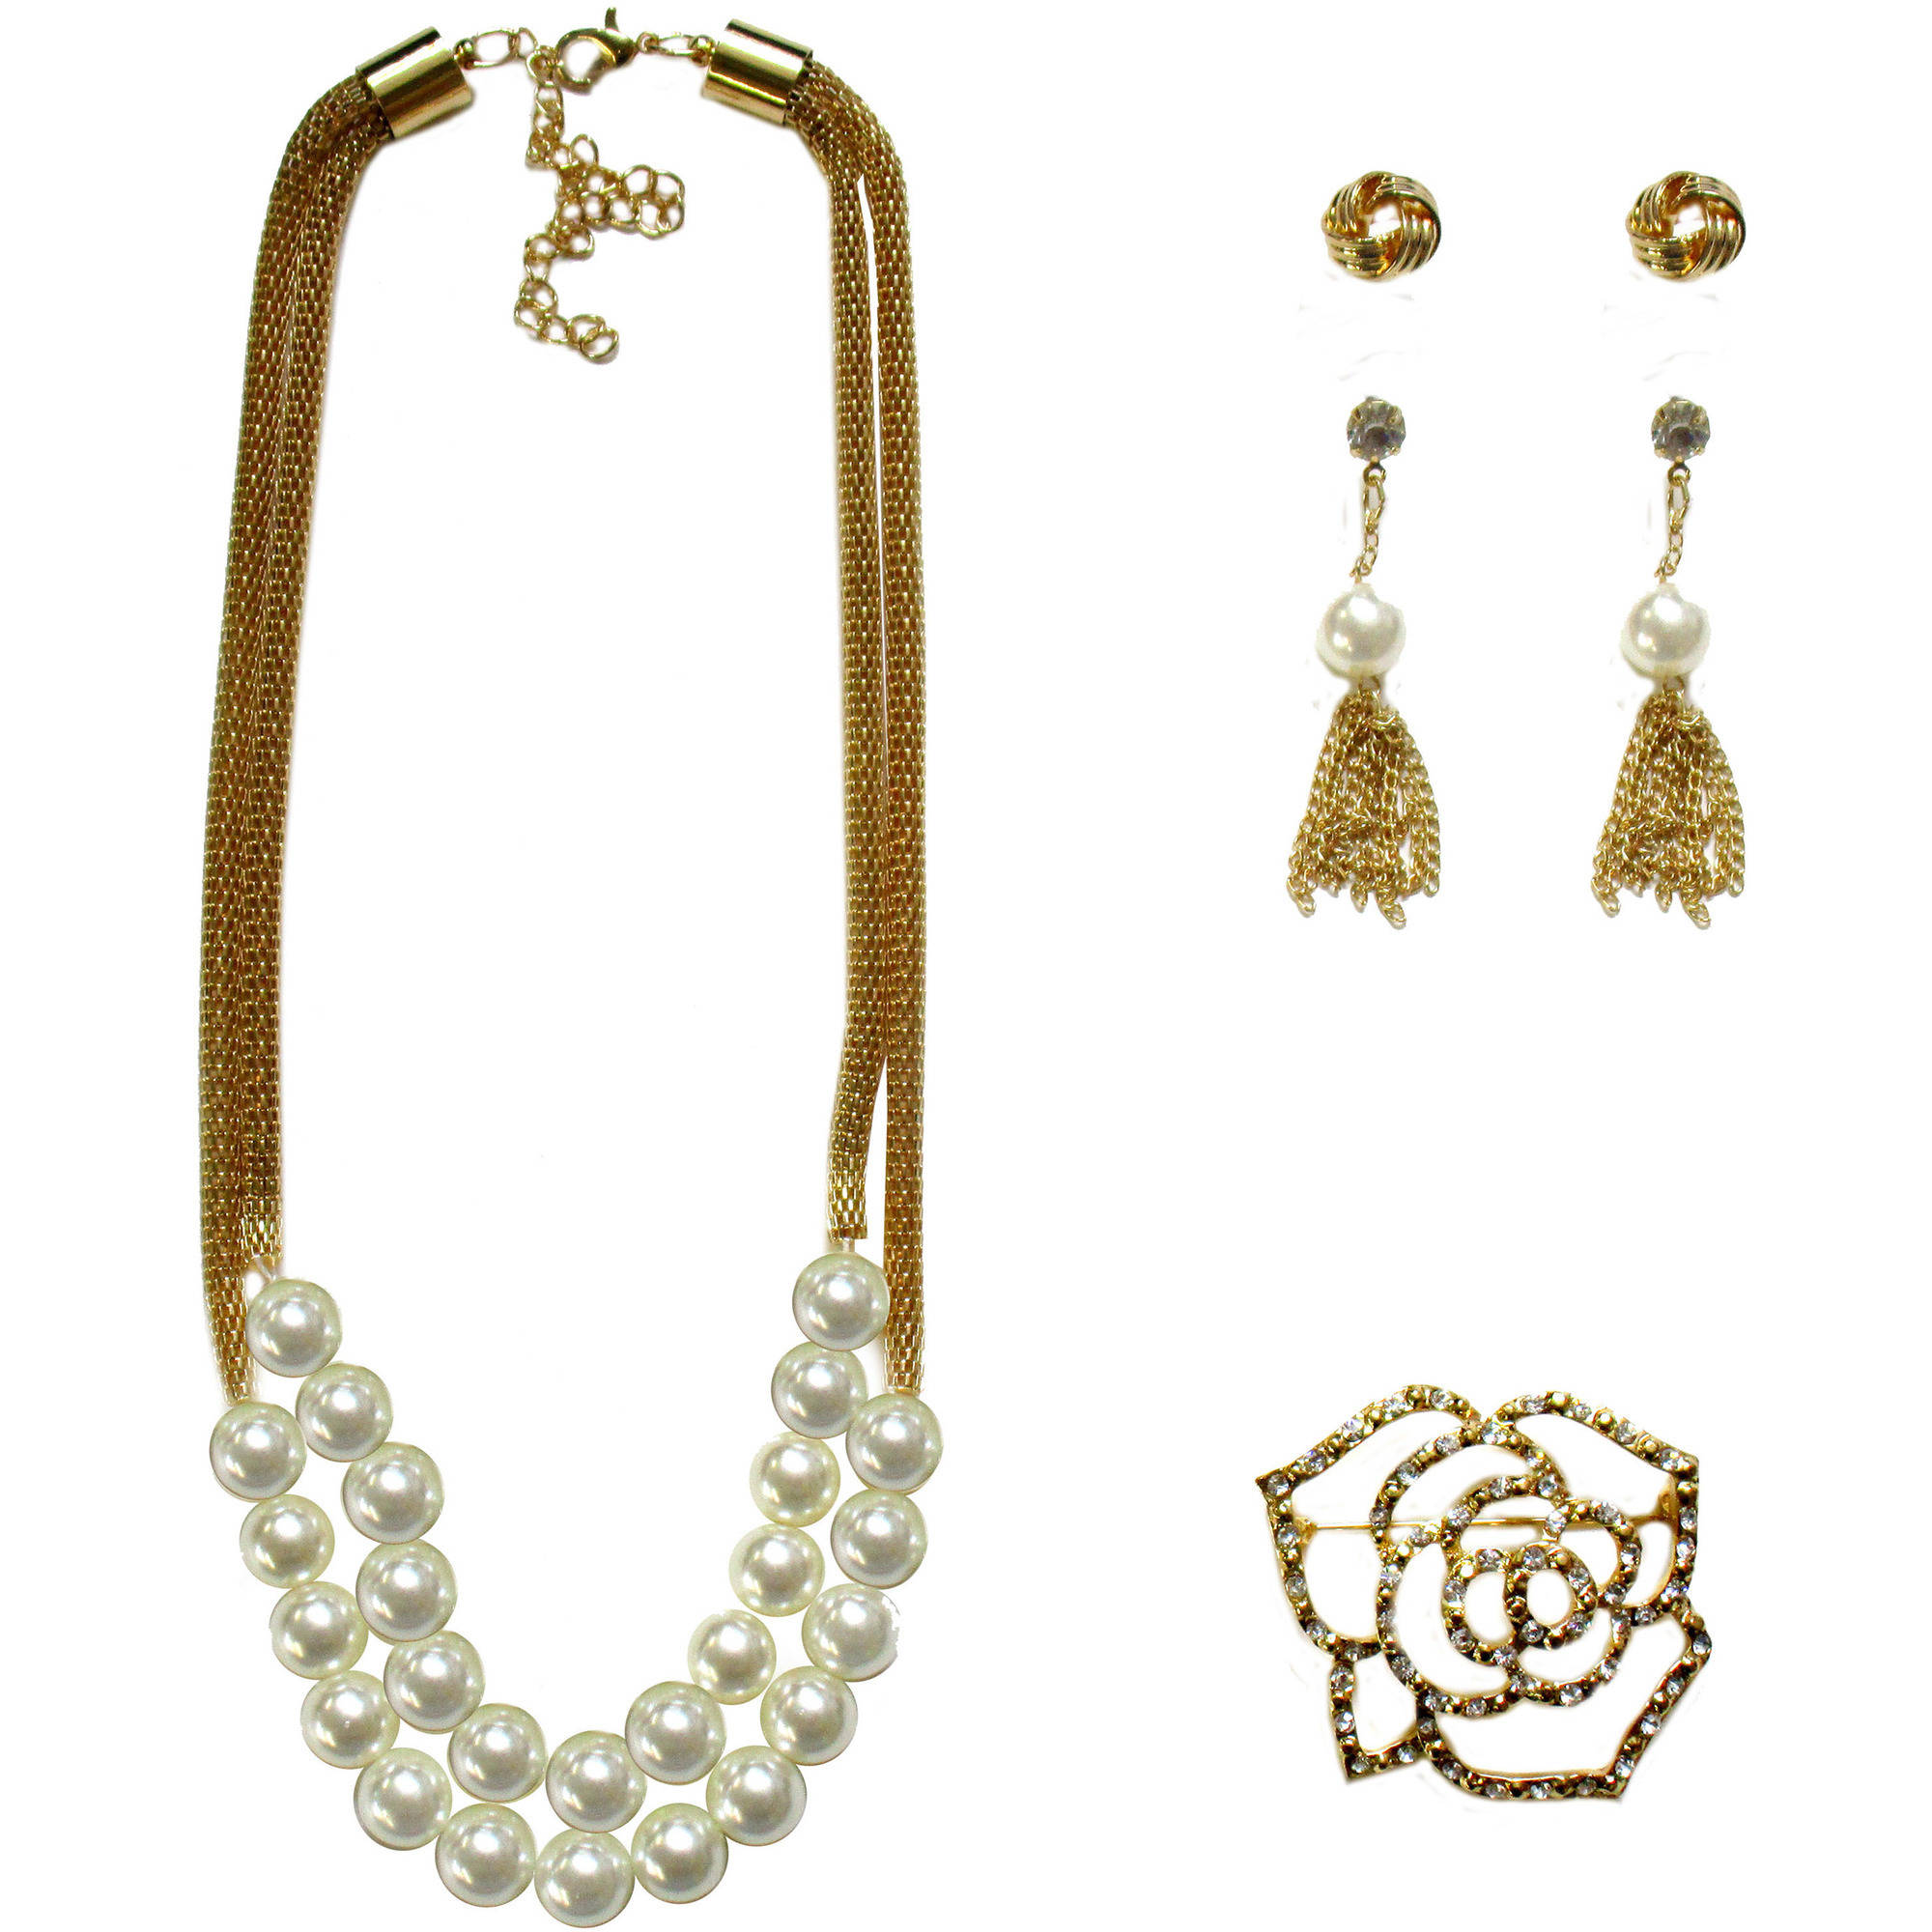 Faux Pearl Necklace, Earrings and Flower Stone Pin Gift Set, 3-Piece